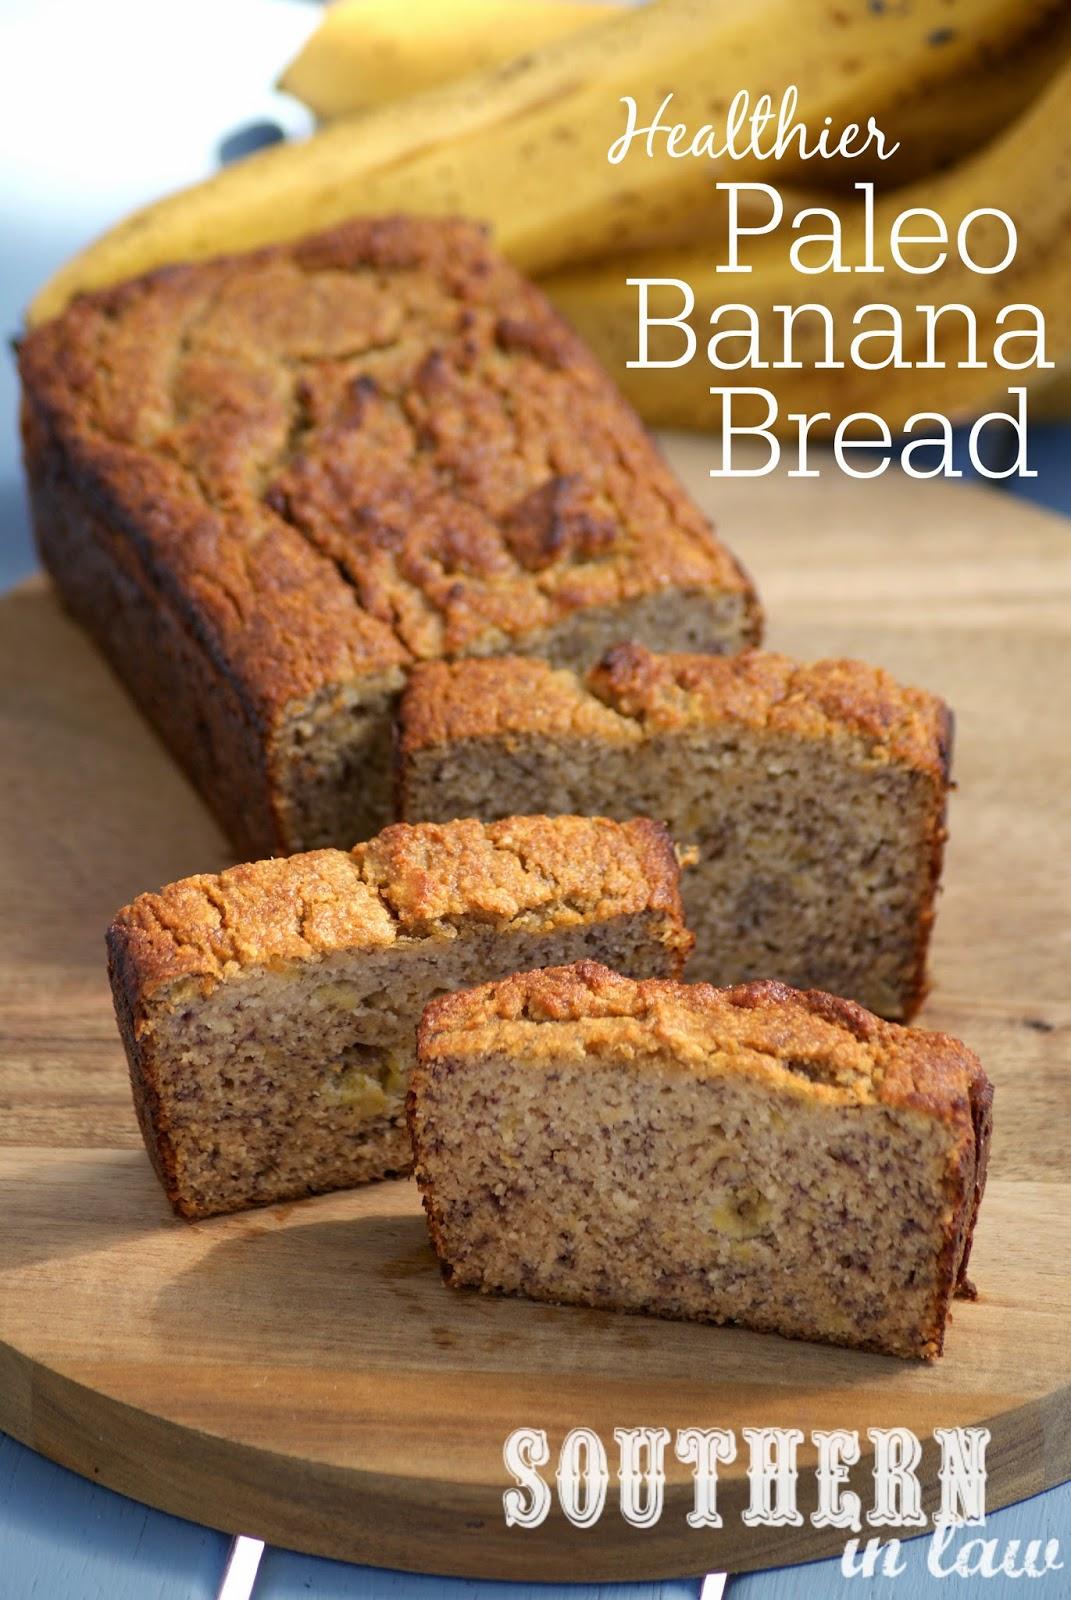 Southern In Law: Recipe: The Best Healthy Paleo Banana Bread